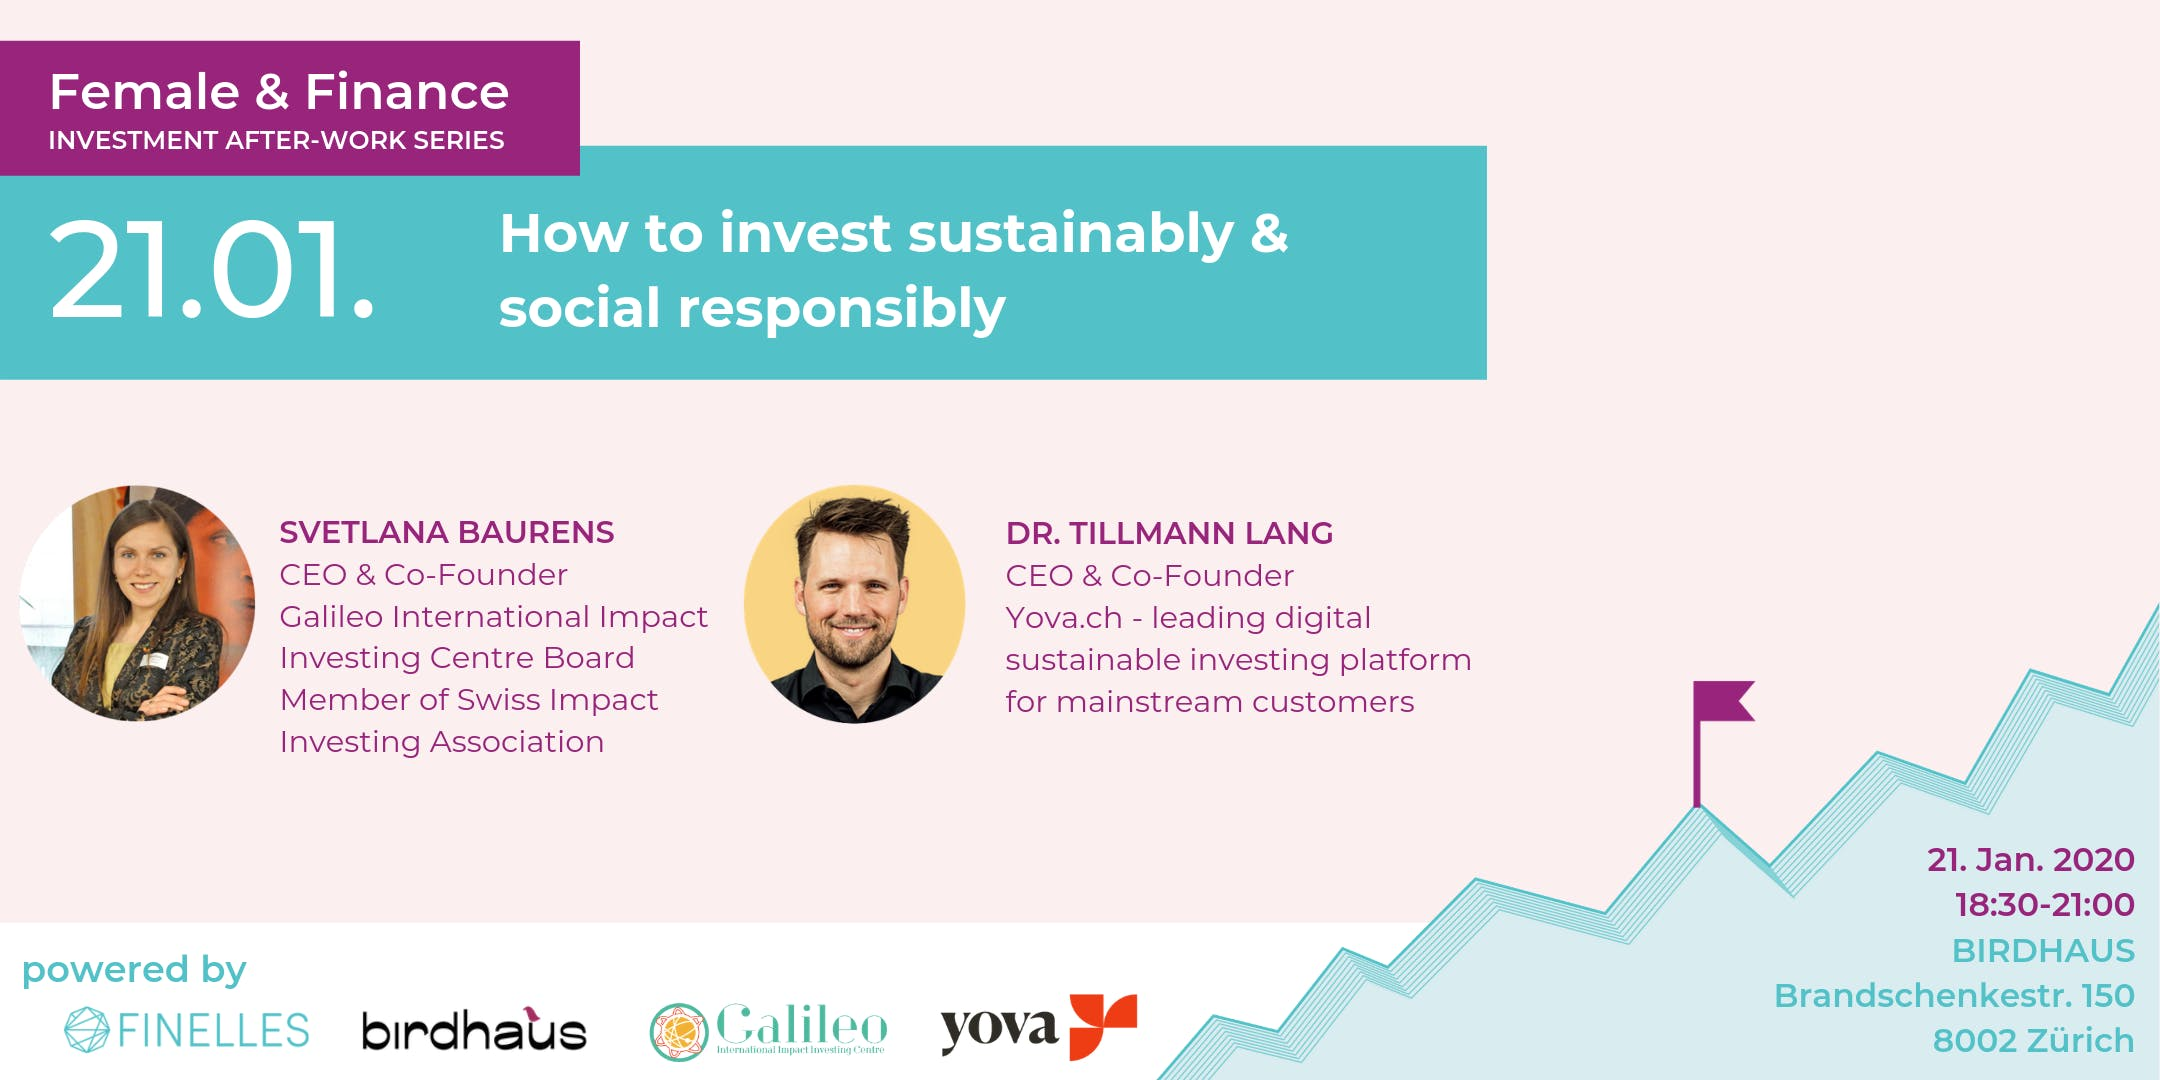 Female & Finance #4 - How to invest sustainably & social responsibly